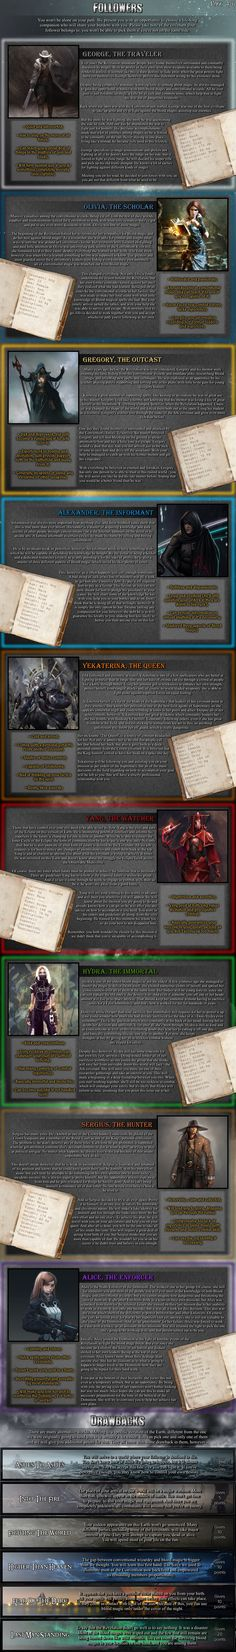 Blood magic cyoa